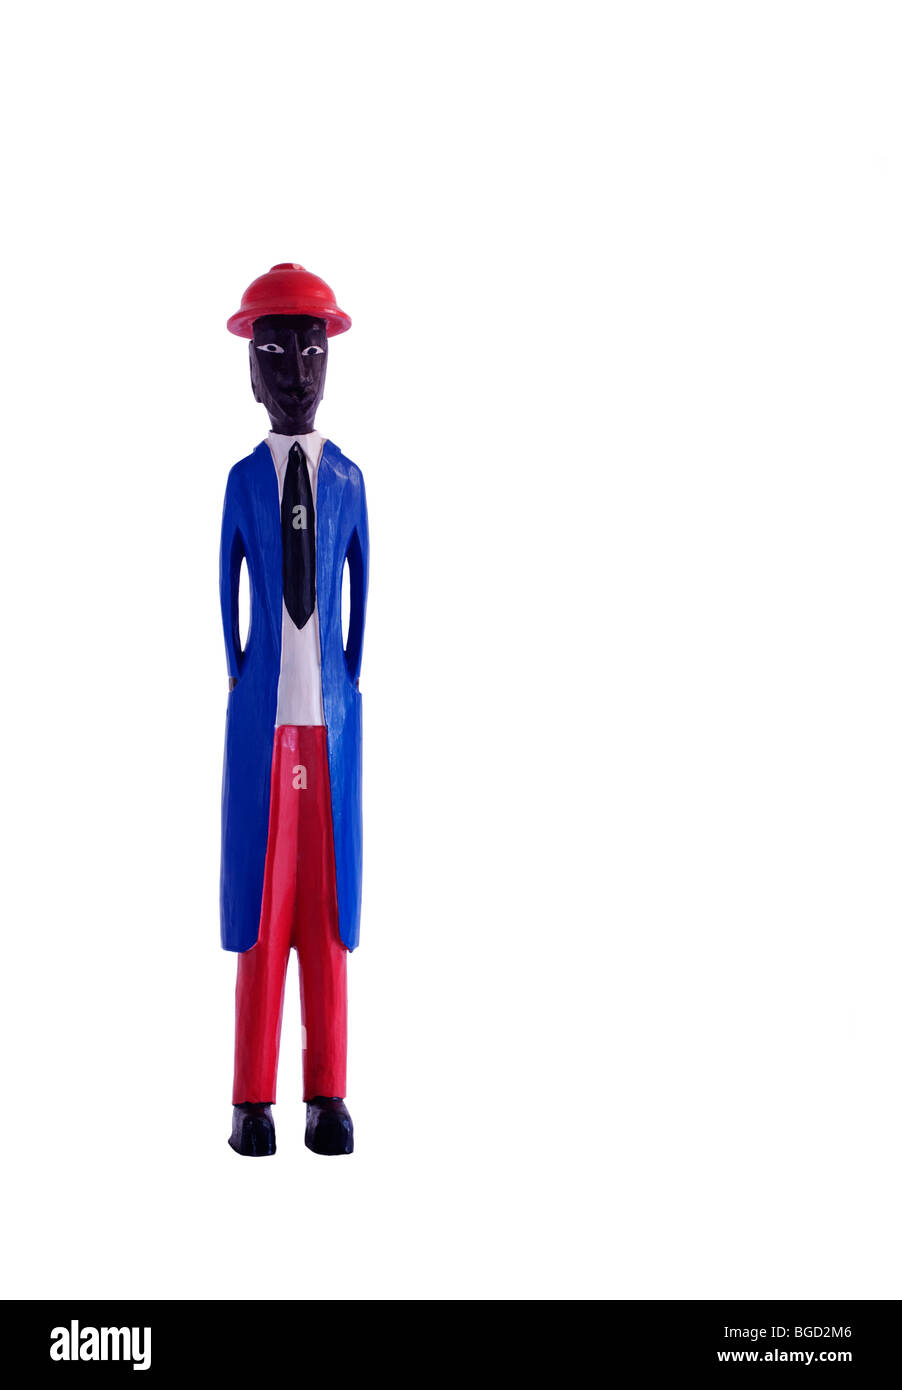 Wood carving of native African in colonial dress. Copy space. White background. Color. - Stock Image